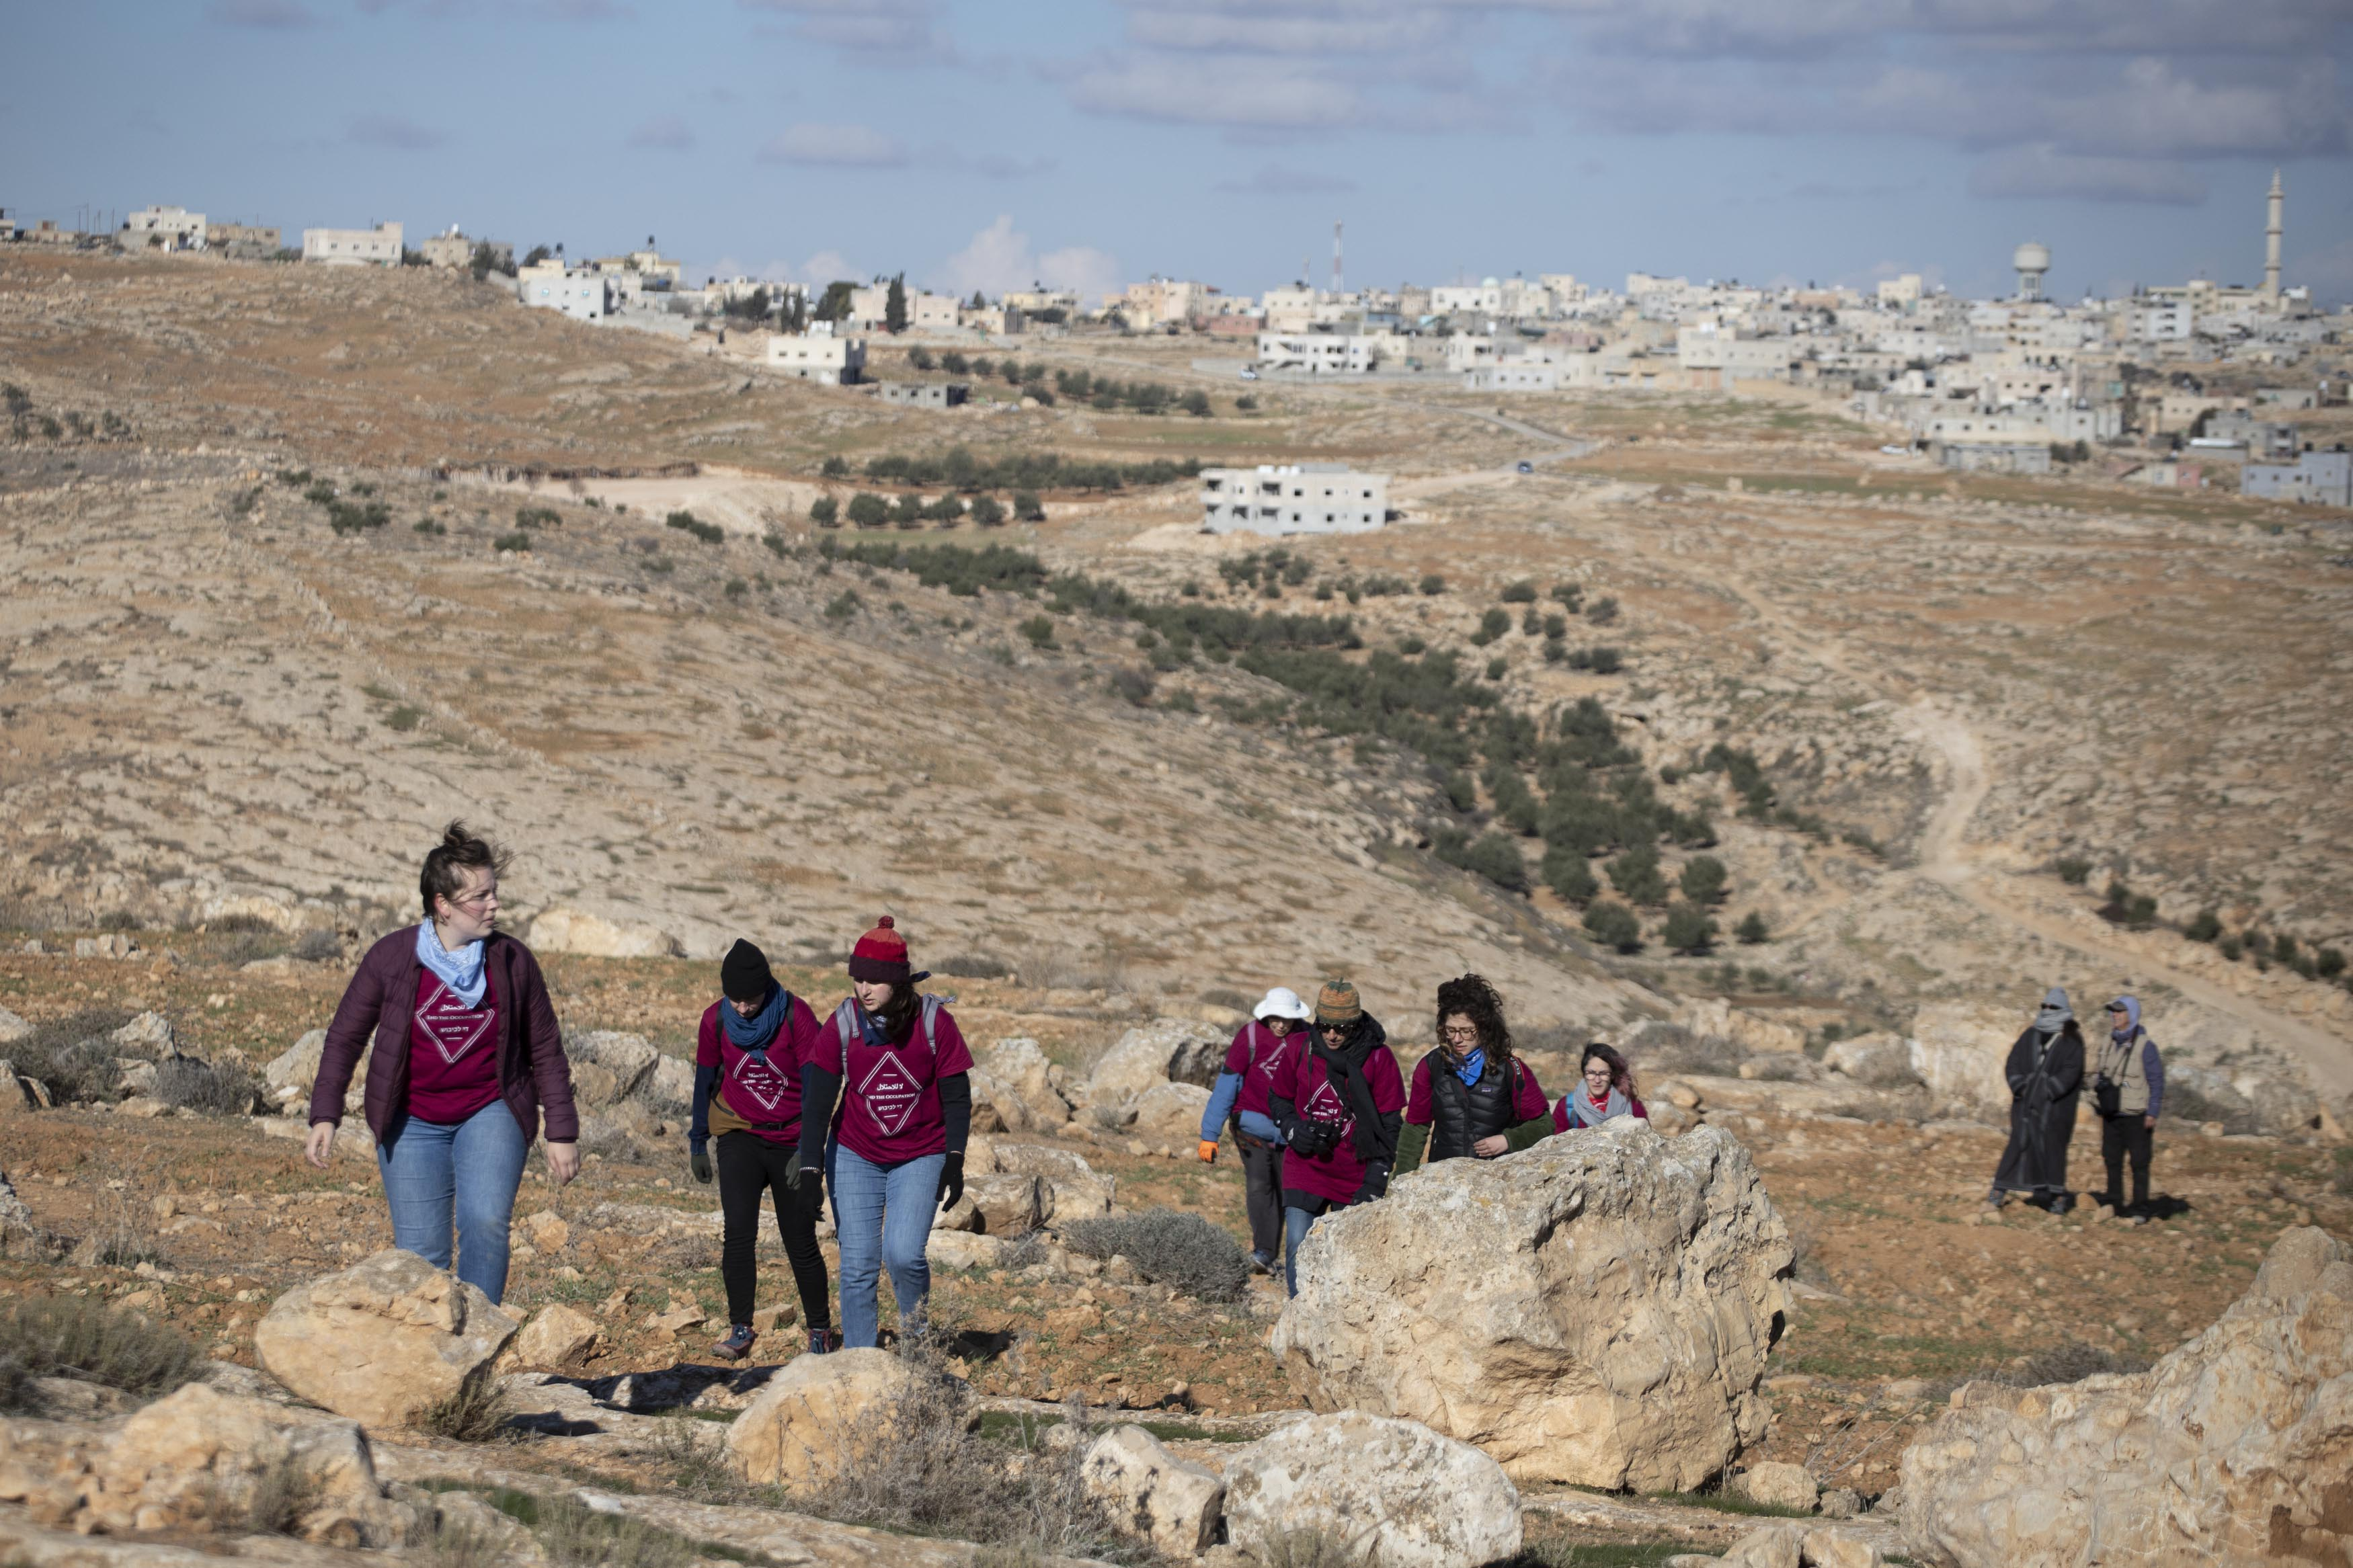 Palestinian, Israeli and international activists make their way to the Ein Albeida spring, South Hebron Hills, January 3, 2020. (Oren Ziv/Activestills.org)